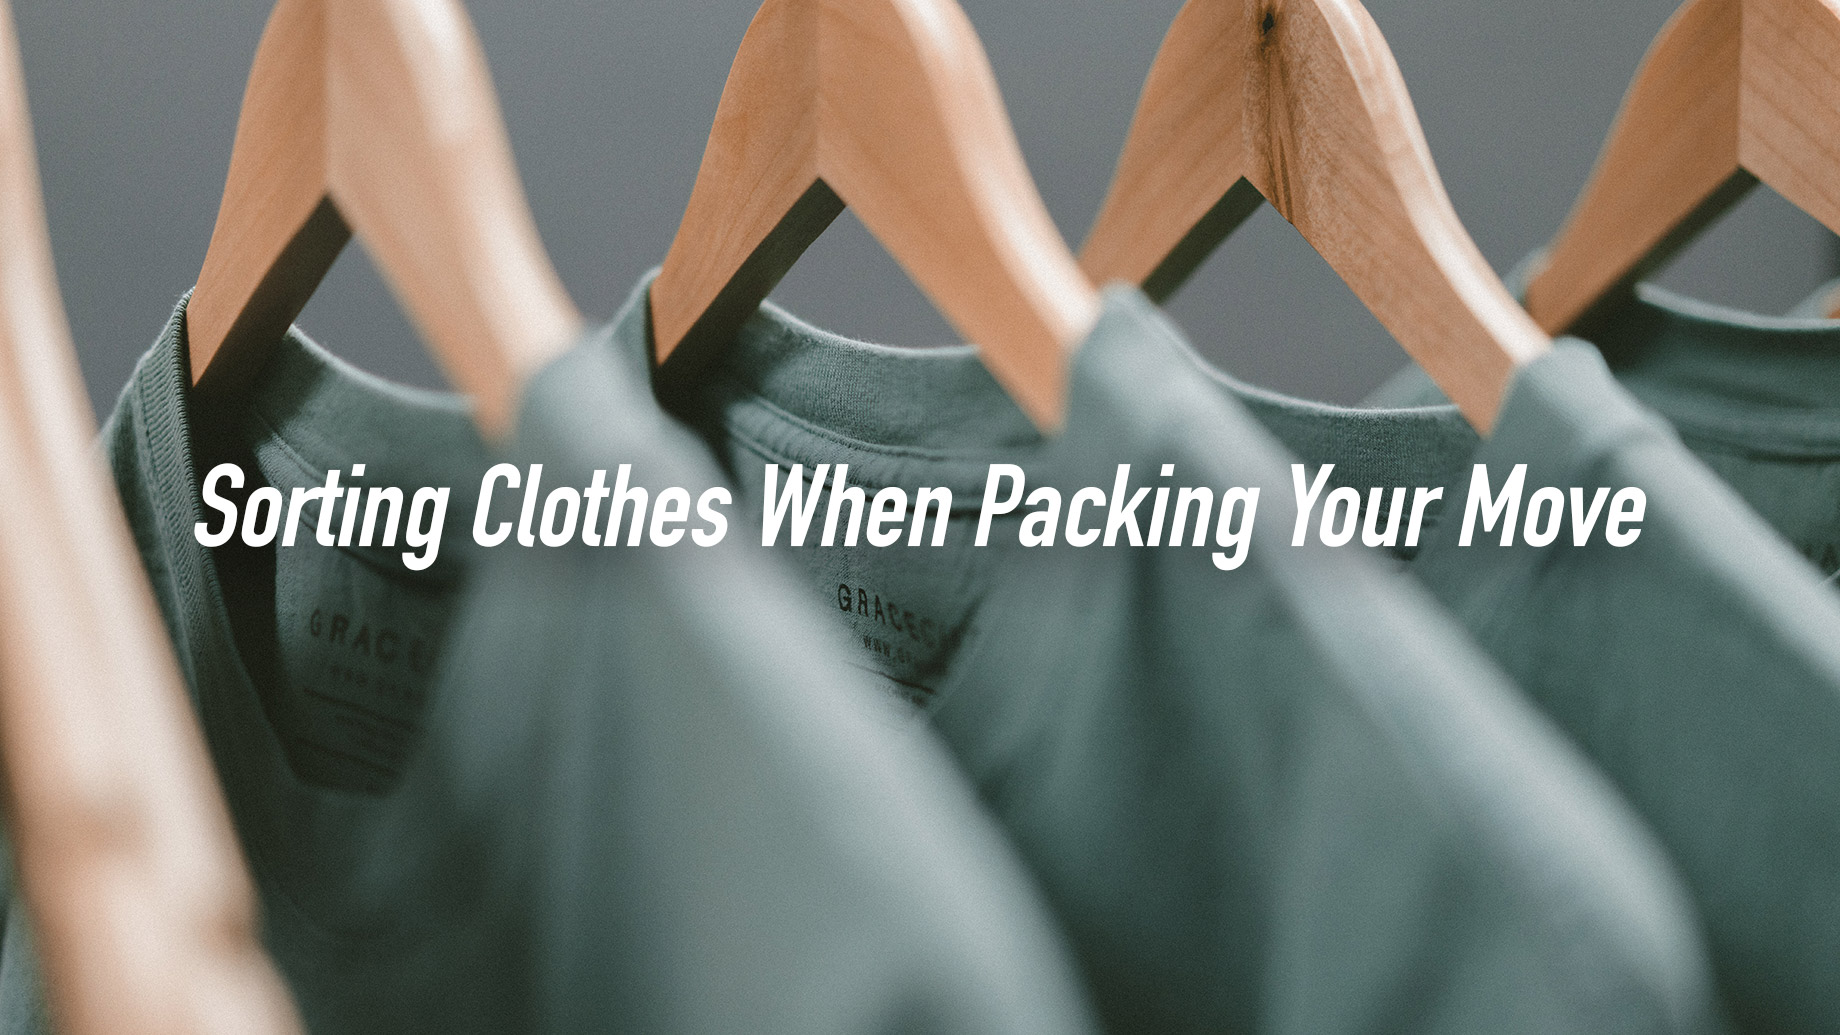 Sorting Clothes When Packing Your Move